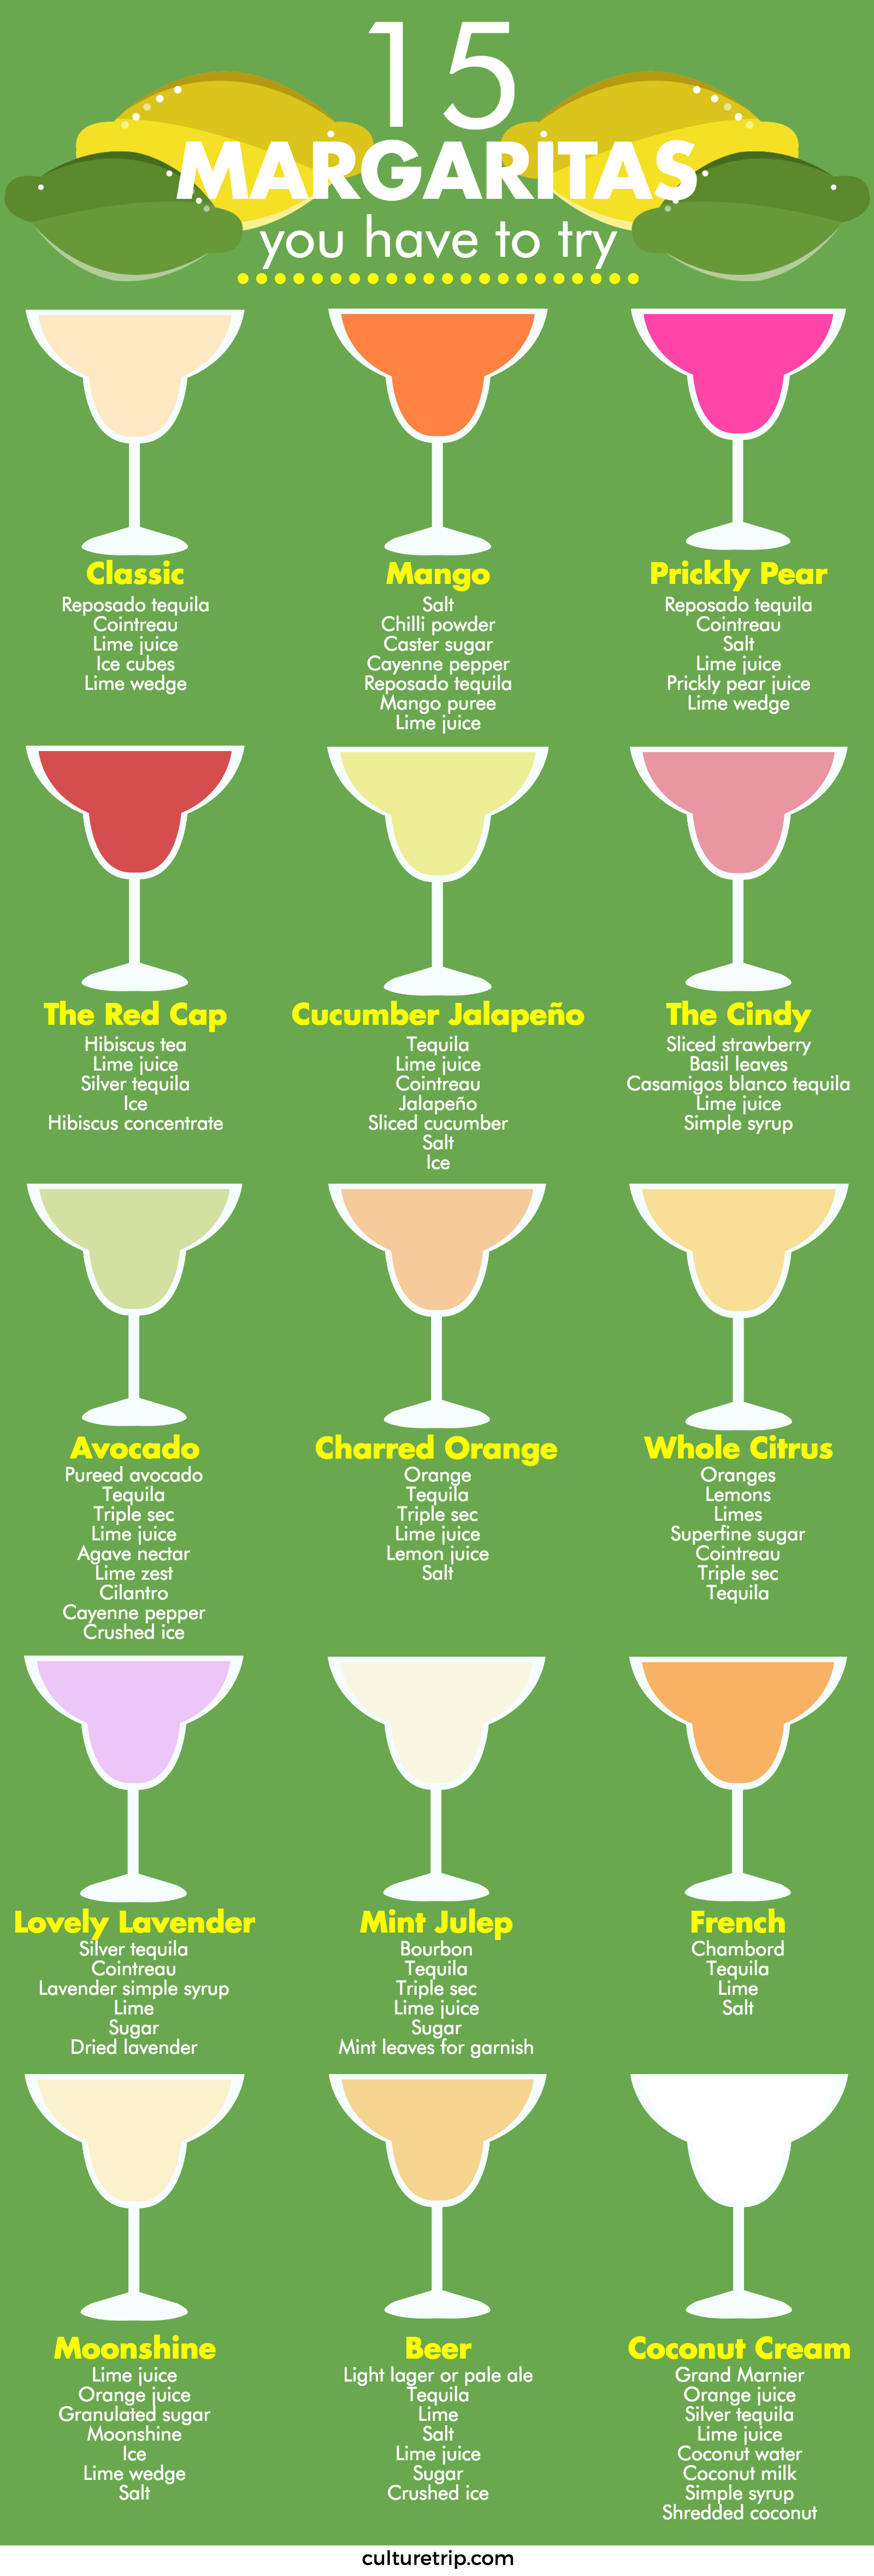 15 Margarita Recipes for National Margarita Day | Margarita ...